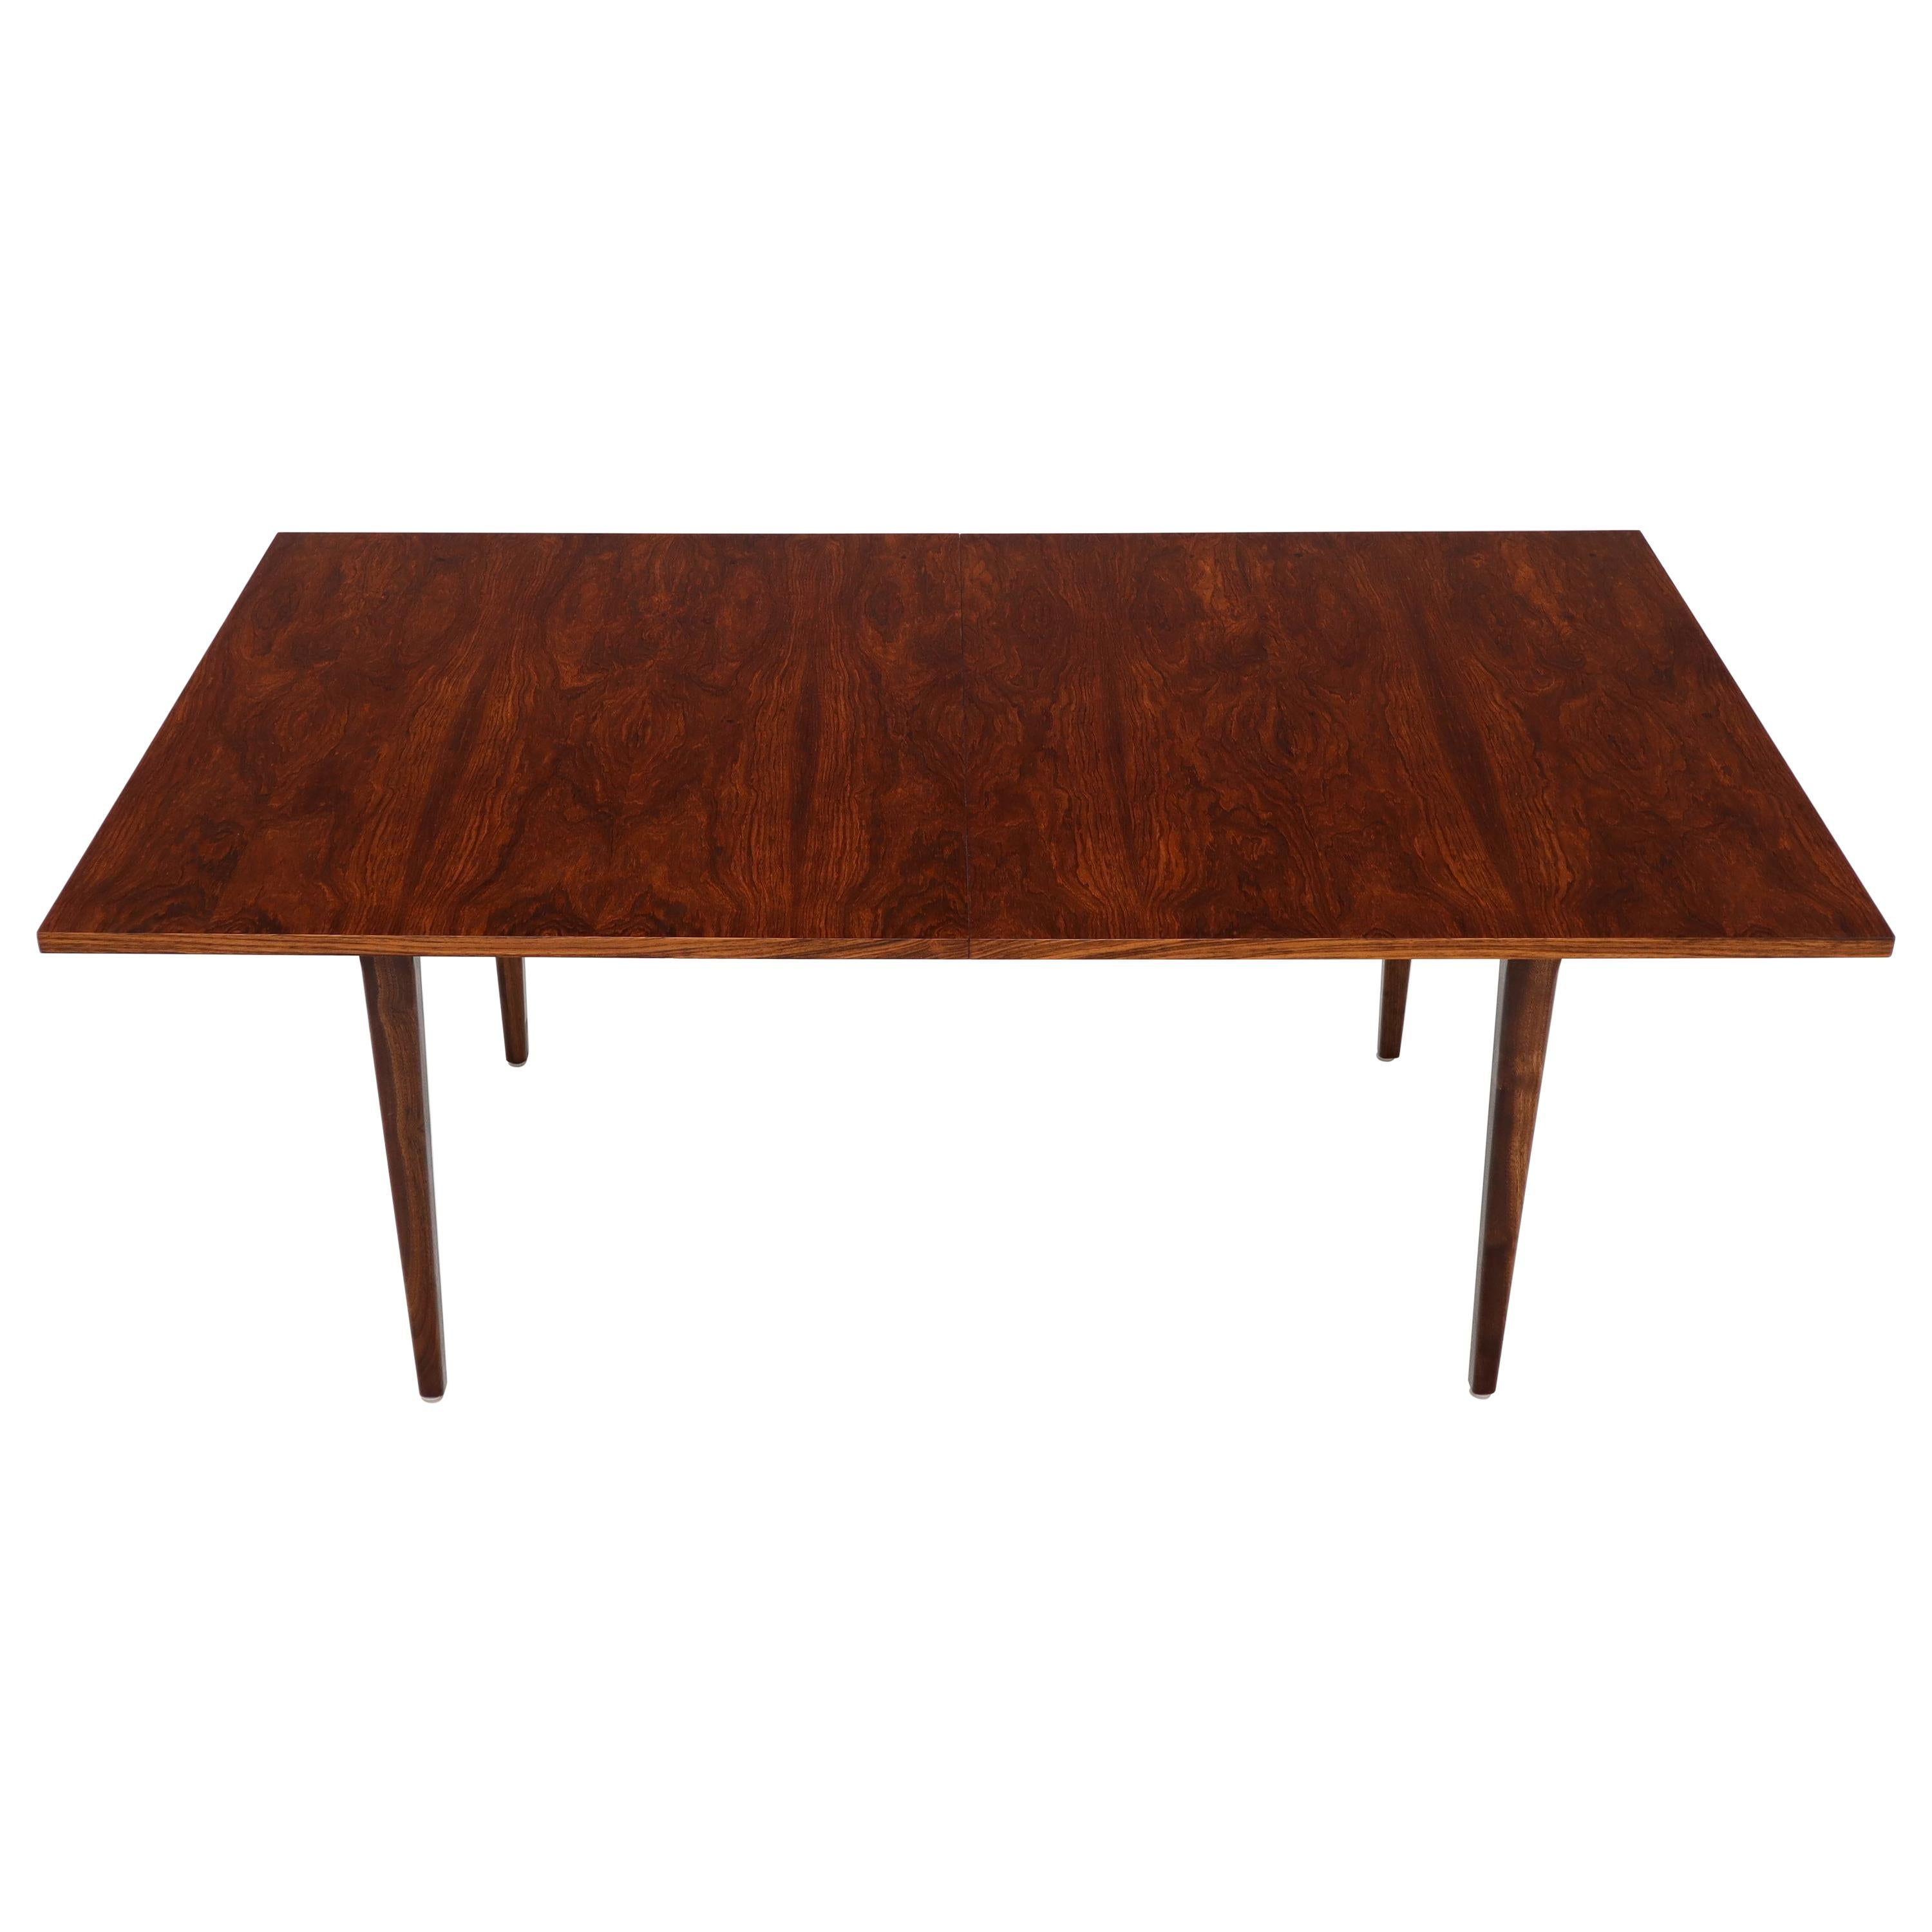 Rosewood Rectangular Dining Table by George Nelson for Herman Miller 2 Leaves